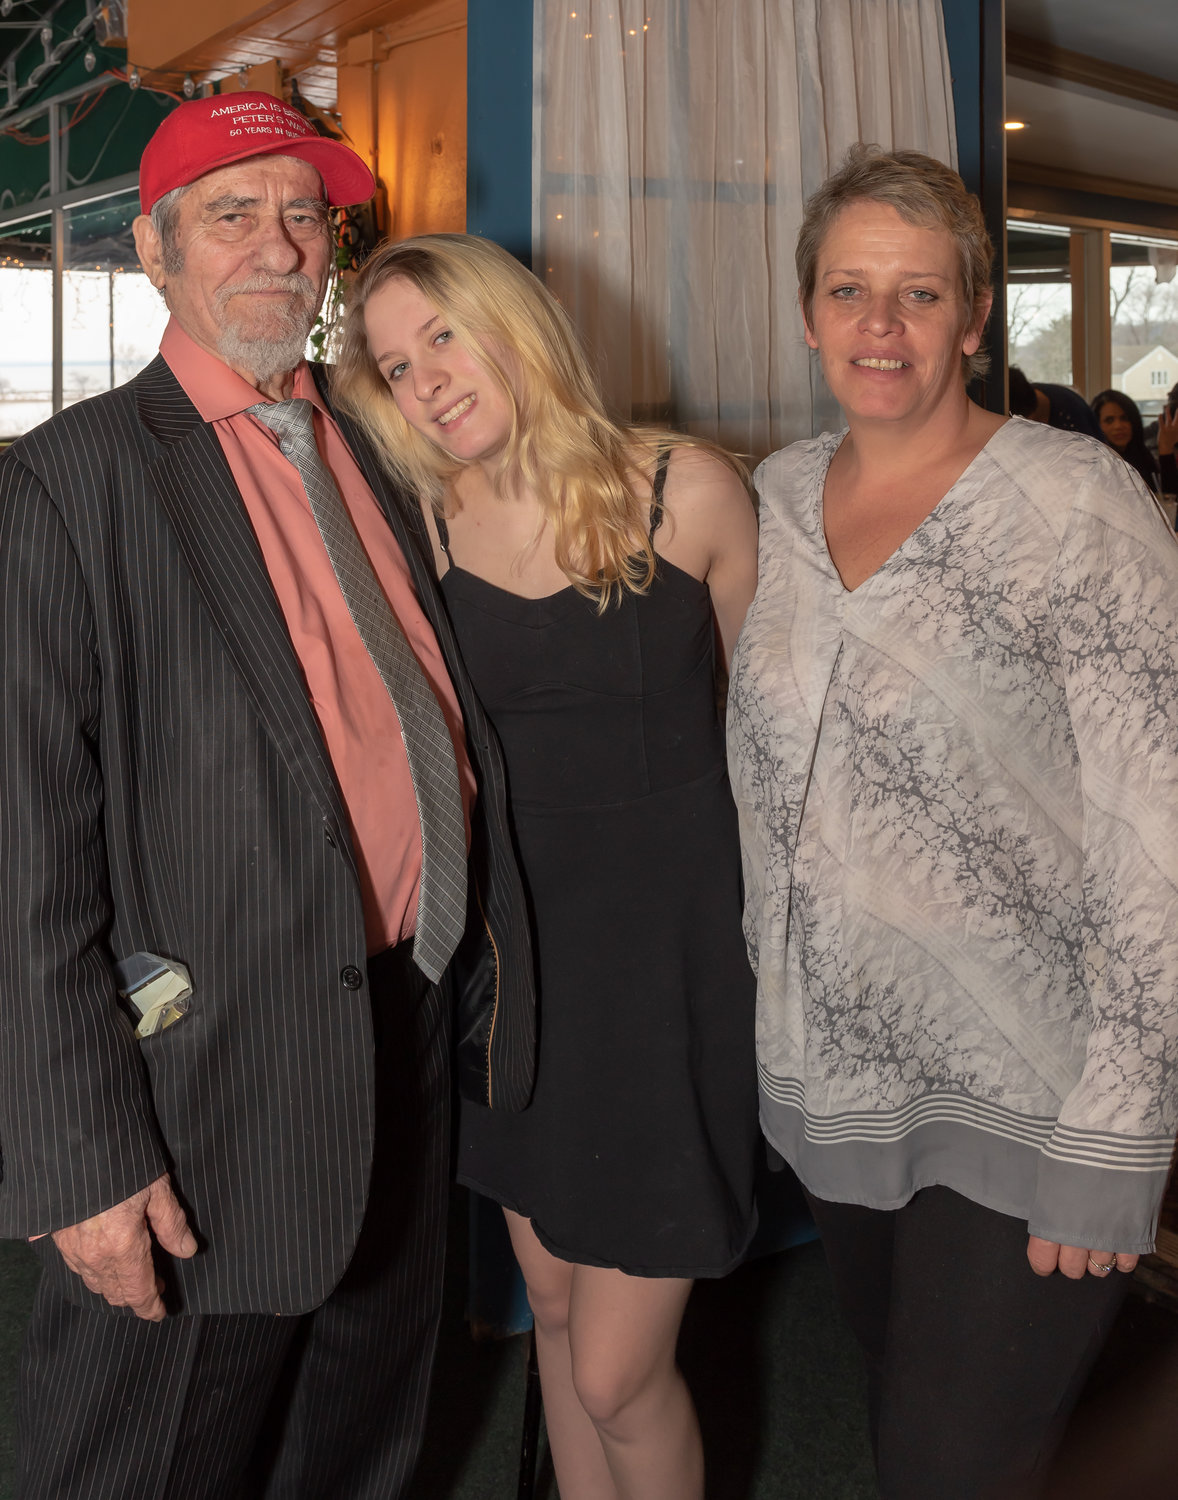 Peter Antonopoulos, co-owner of the View Grill, celebrated 50 years in business in Glen Cove with, among others, his granddaughter Taylor Riley and his daughter, Carol.